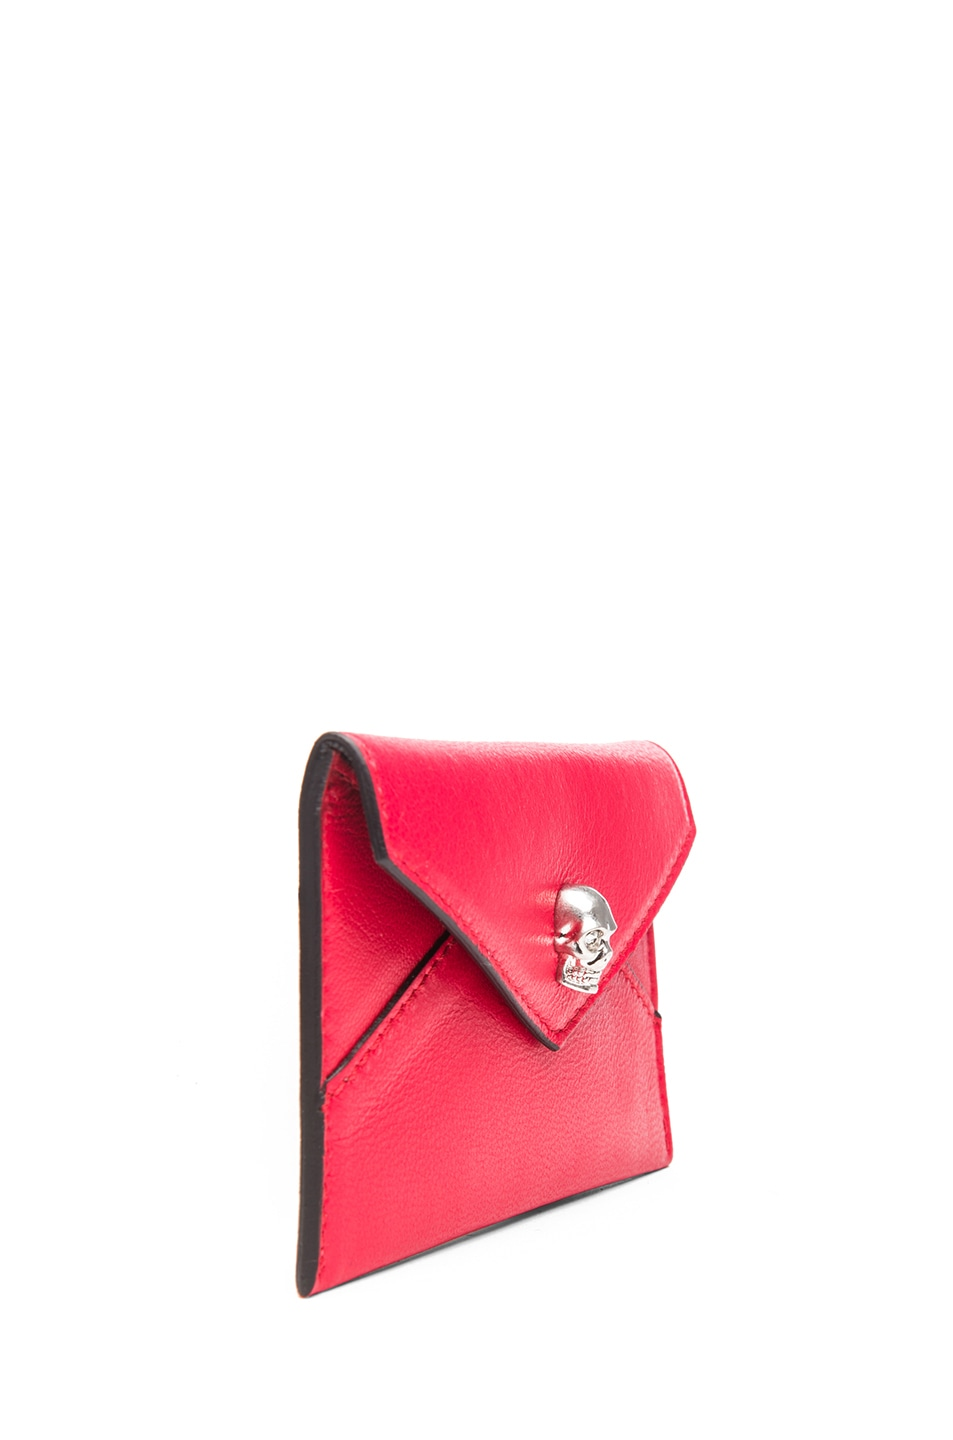 Image 3 of Alexander McQueen Envelope Card Holder in Shiny Red